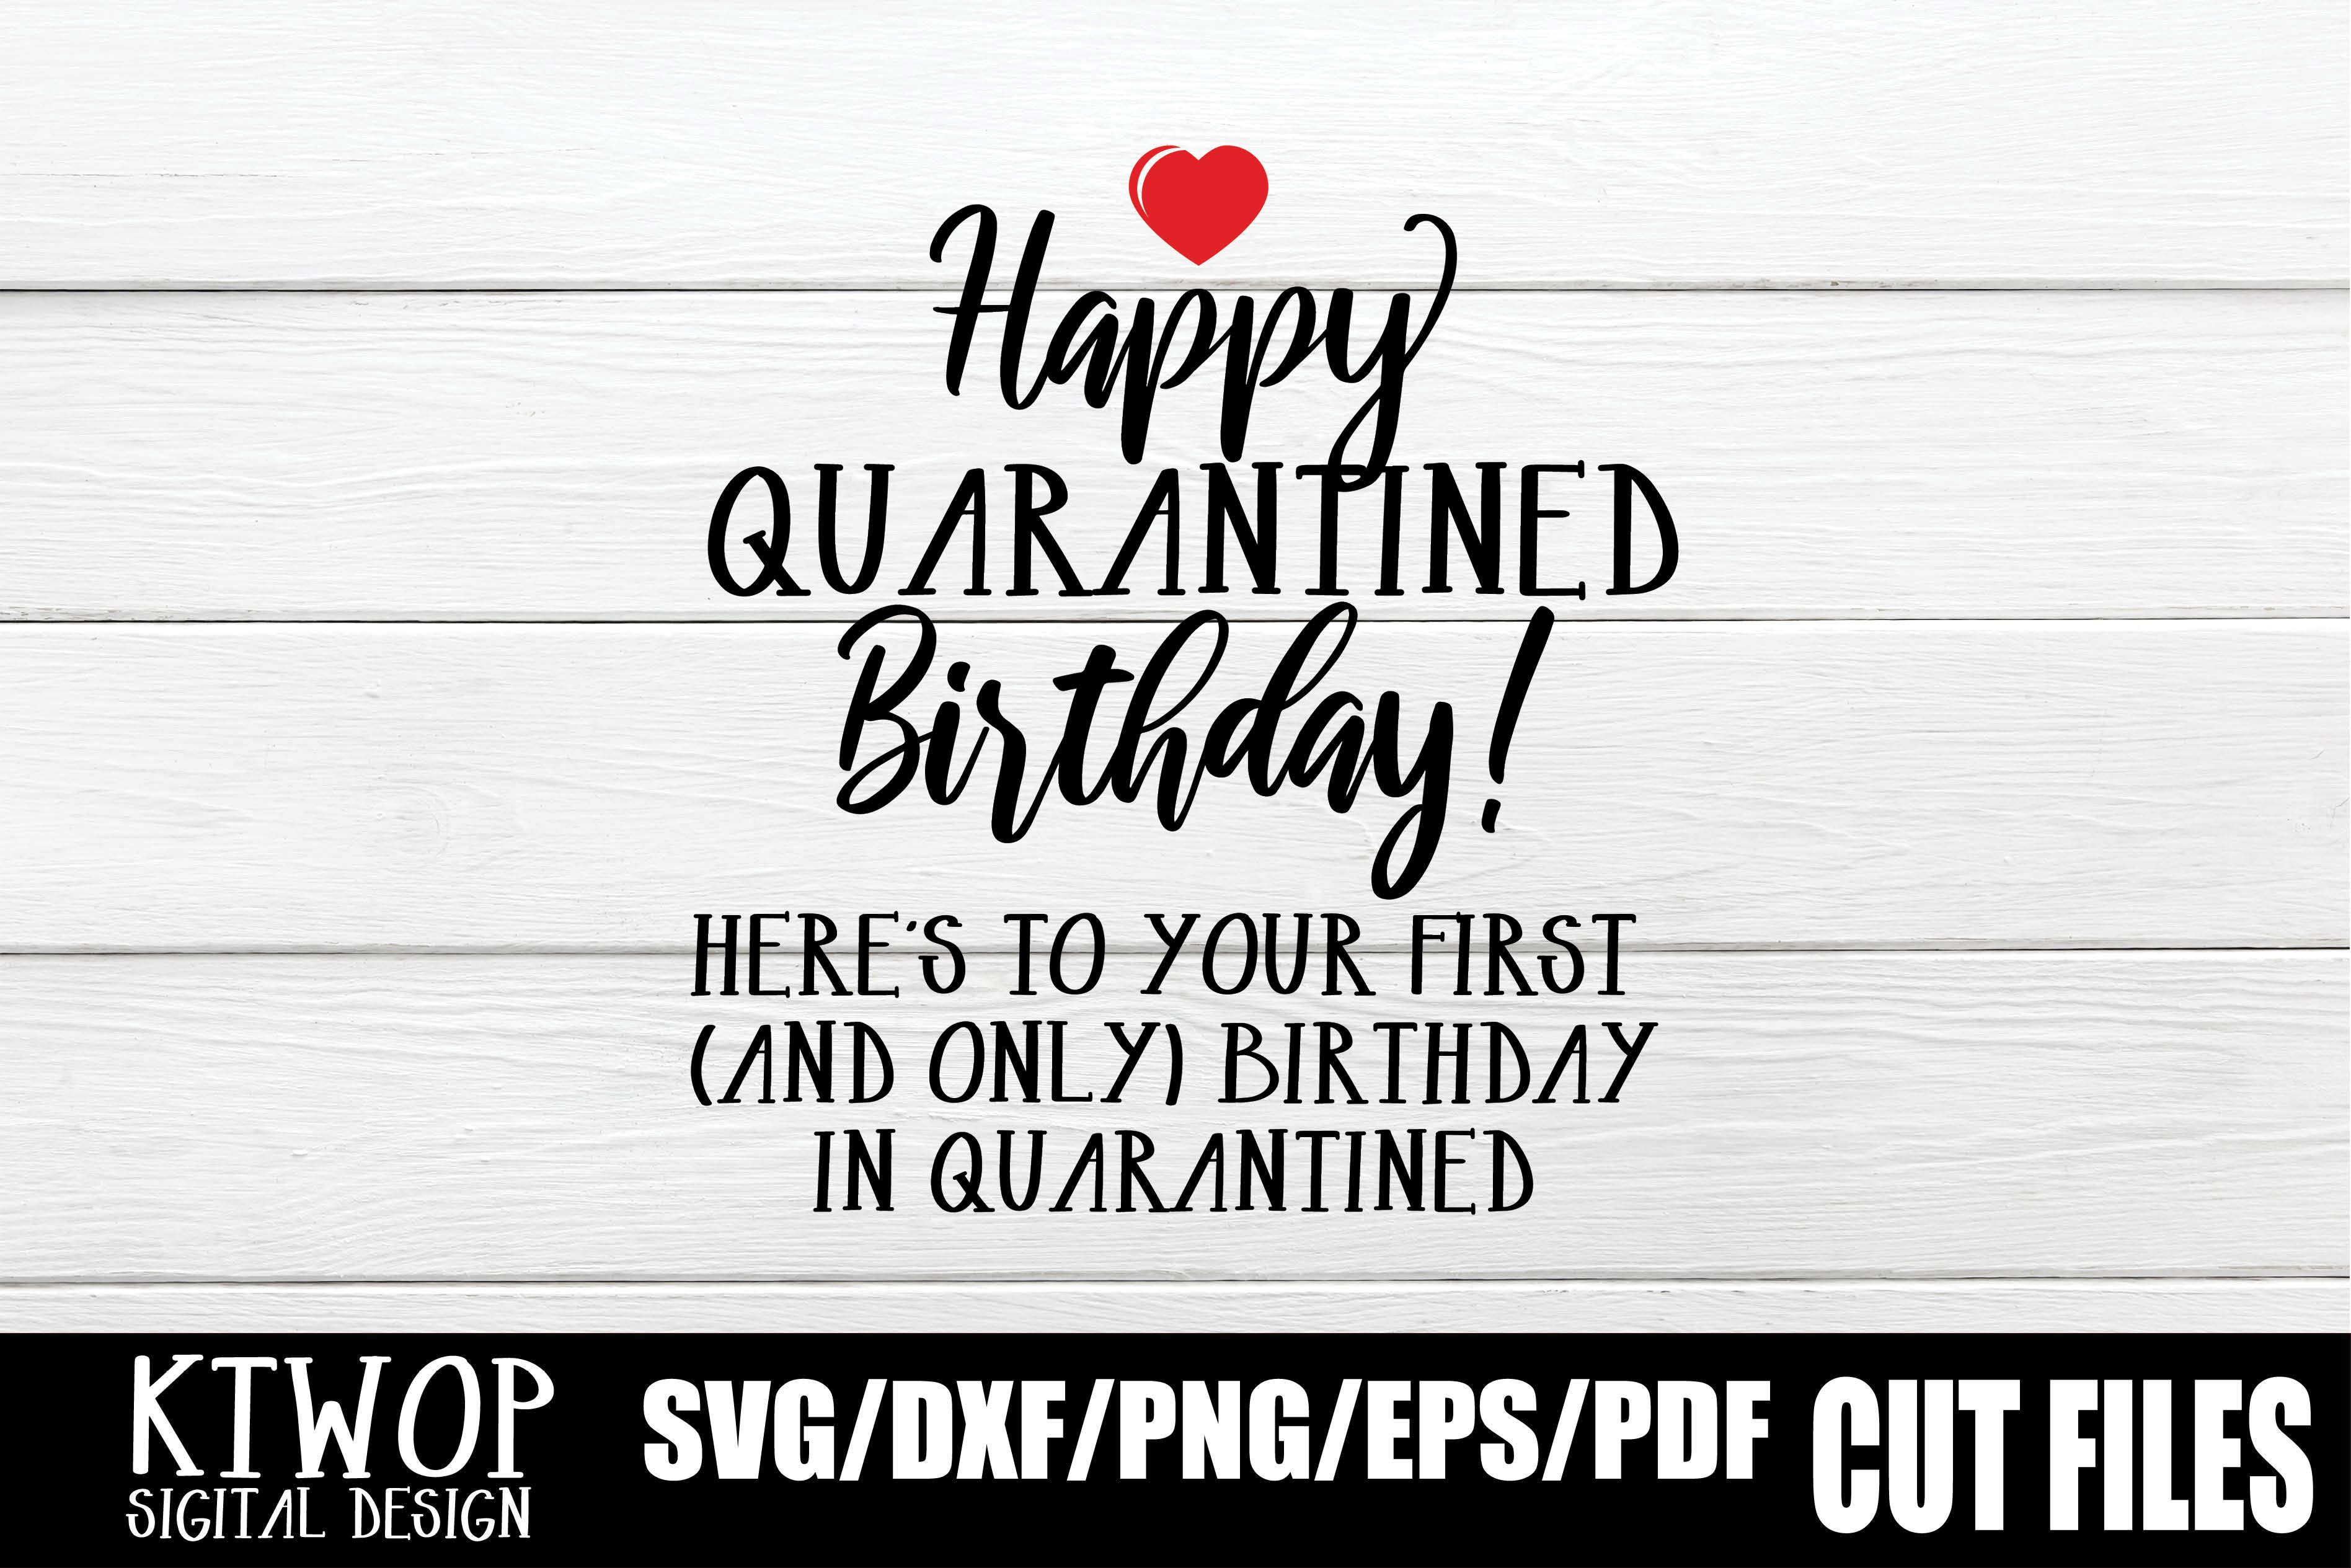 Download Free Happy Birthday Quarantined 2020 Graphic By Ktwop Creative Fabrica for Cricut Explore, Silhouette and other cutting machines.